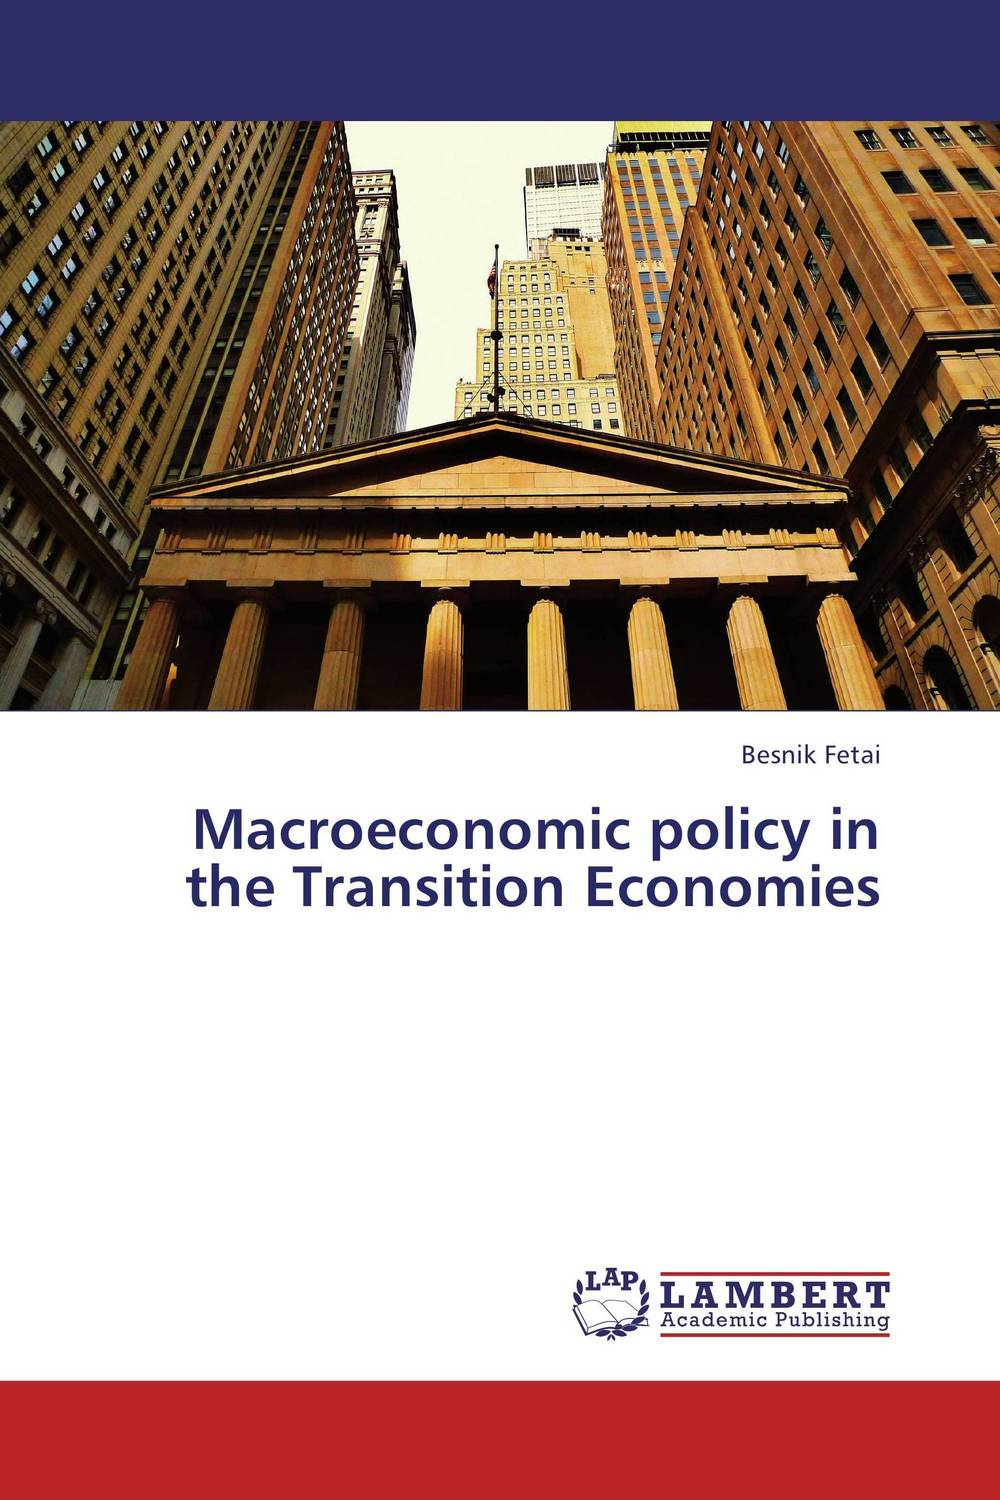 Macroeconomic policy in the Transition Economies kenneth rosen d investing in income properties the big six formula for achieving wealth in real estate